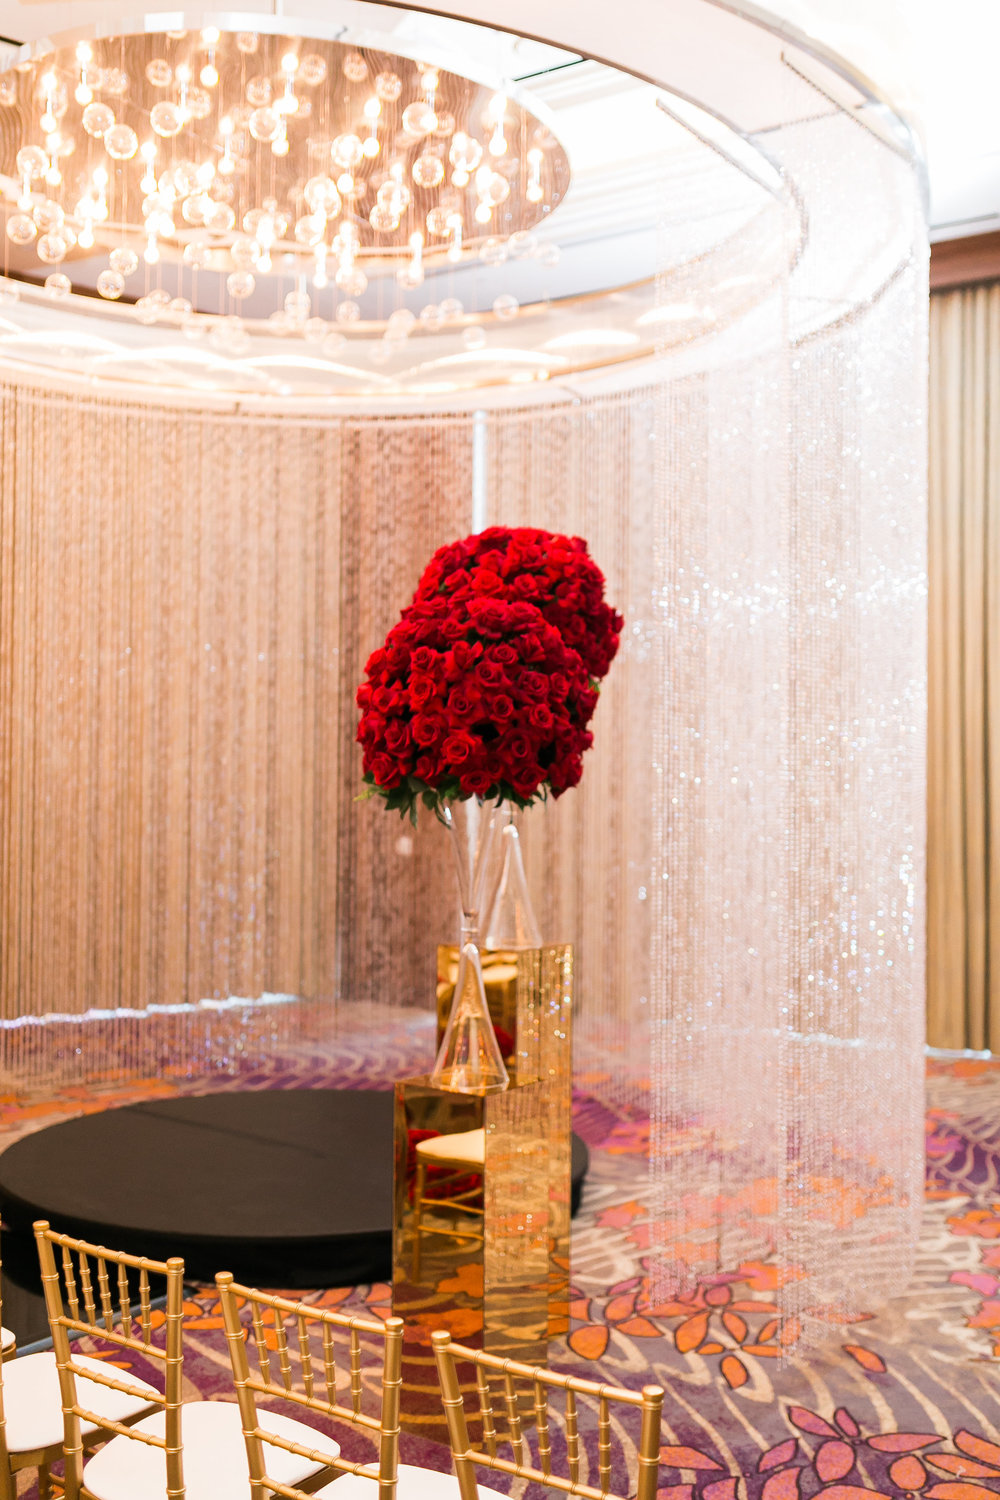 Deep red roses for the ceremony alter.   Las Vegas Wedding Planner Andrea Eppolito shares this multicultural wedding.  Photo by J.Anne Photography. Wedding at Mandarin Oriental Las Vegas.  Decor by DBD Vegas.